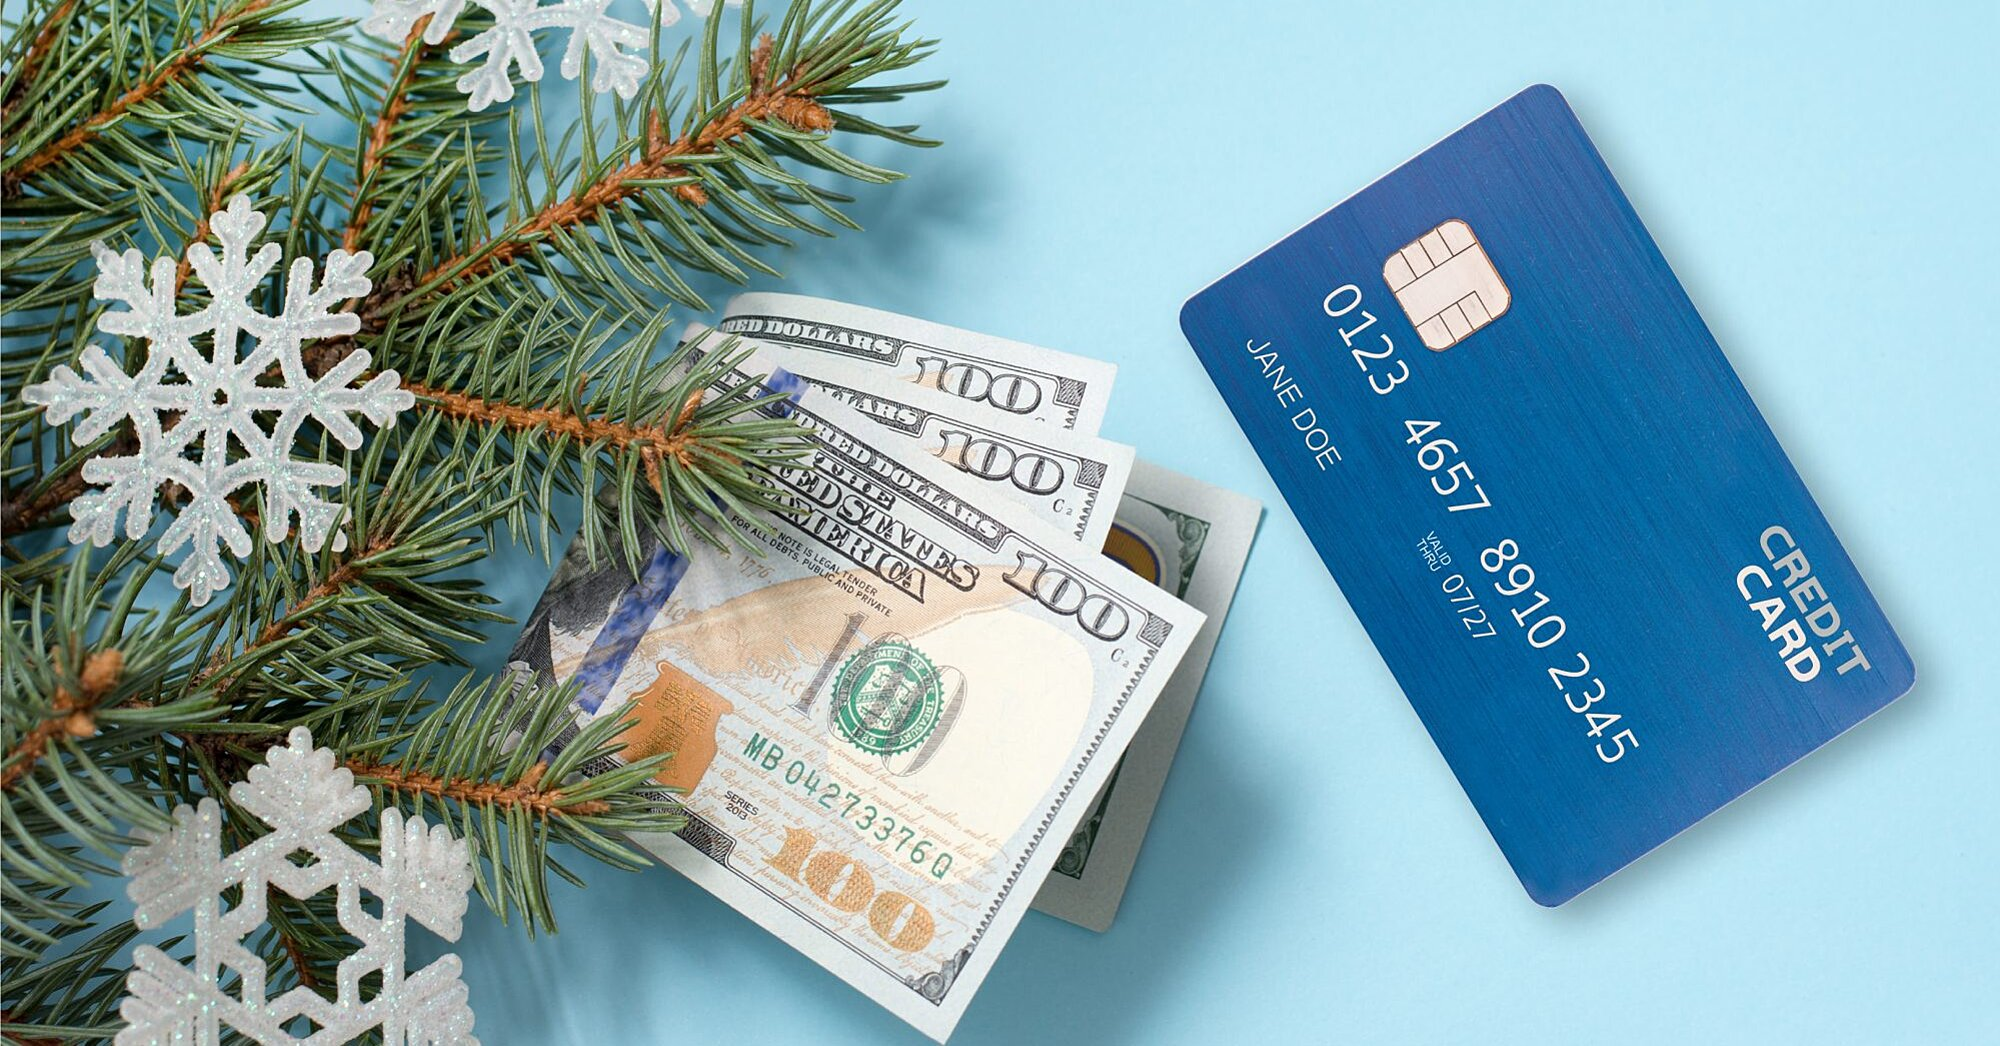 Should You Pay for Your Holiday Shopping With Debit, Credit, or Cash? We Asked the Pros